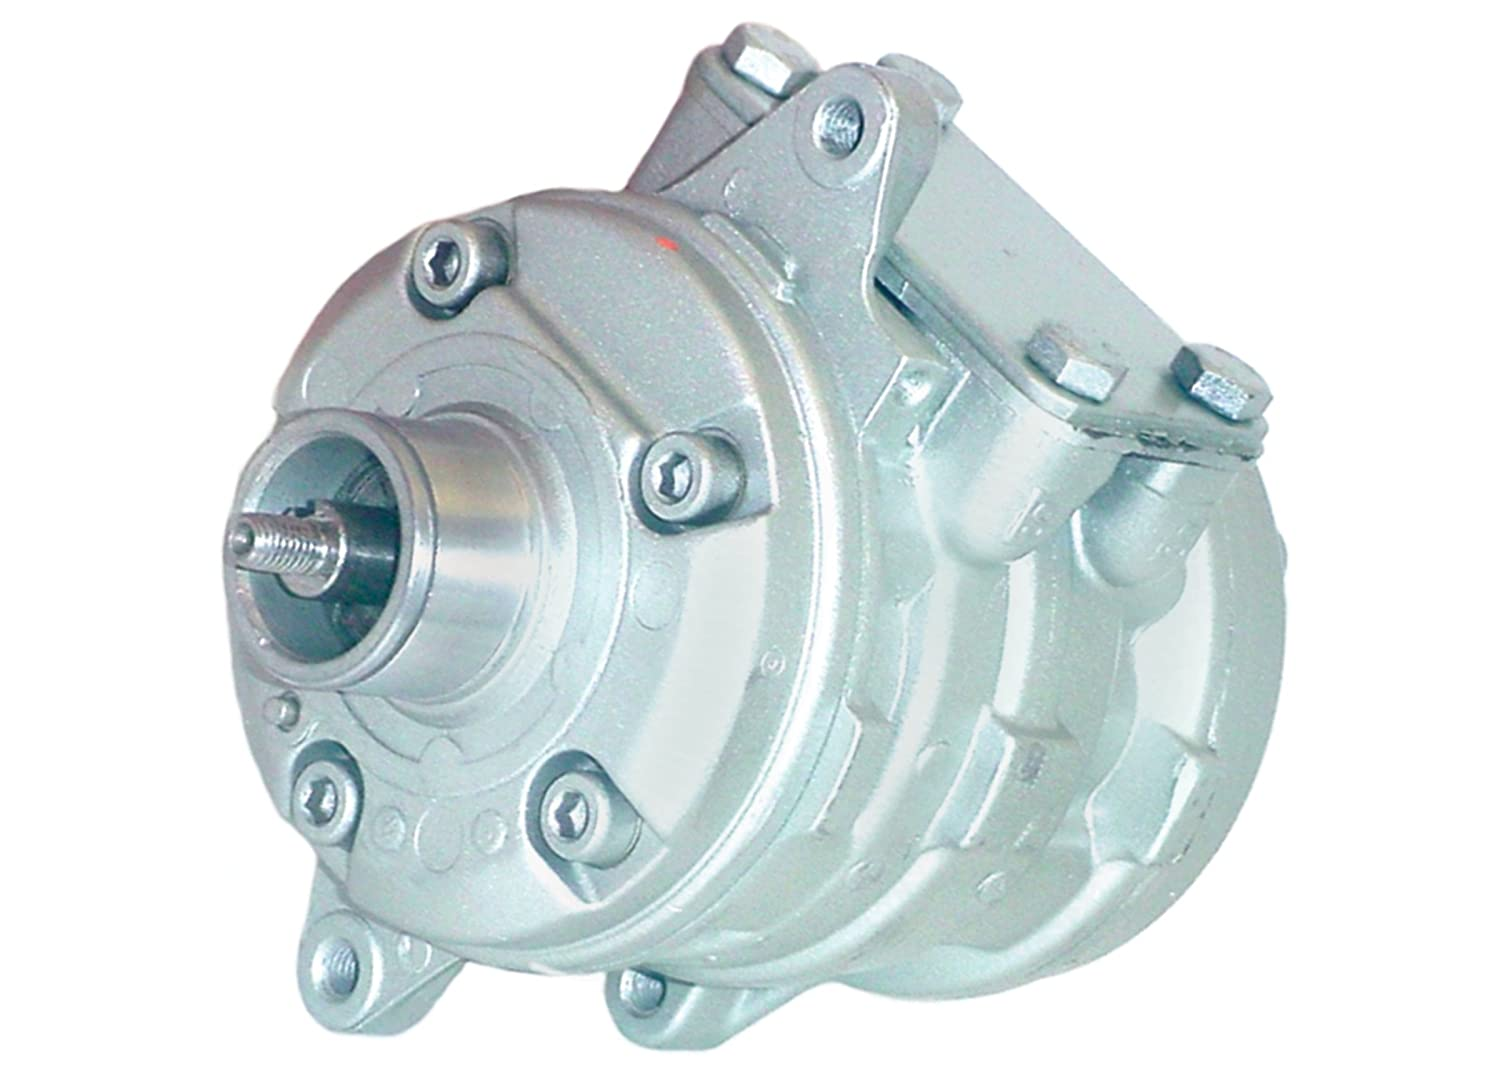 ACDelco 15-20625 Professional Air Conditioning Compressor Remanufactured 15-20625-ACD